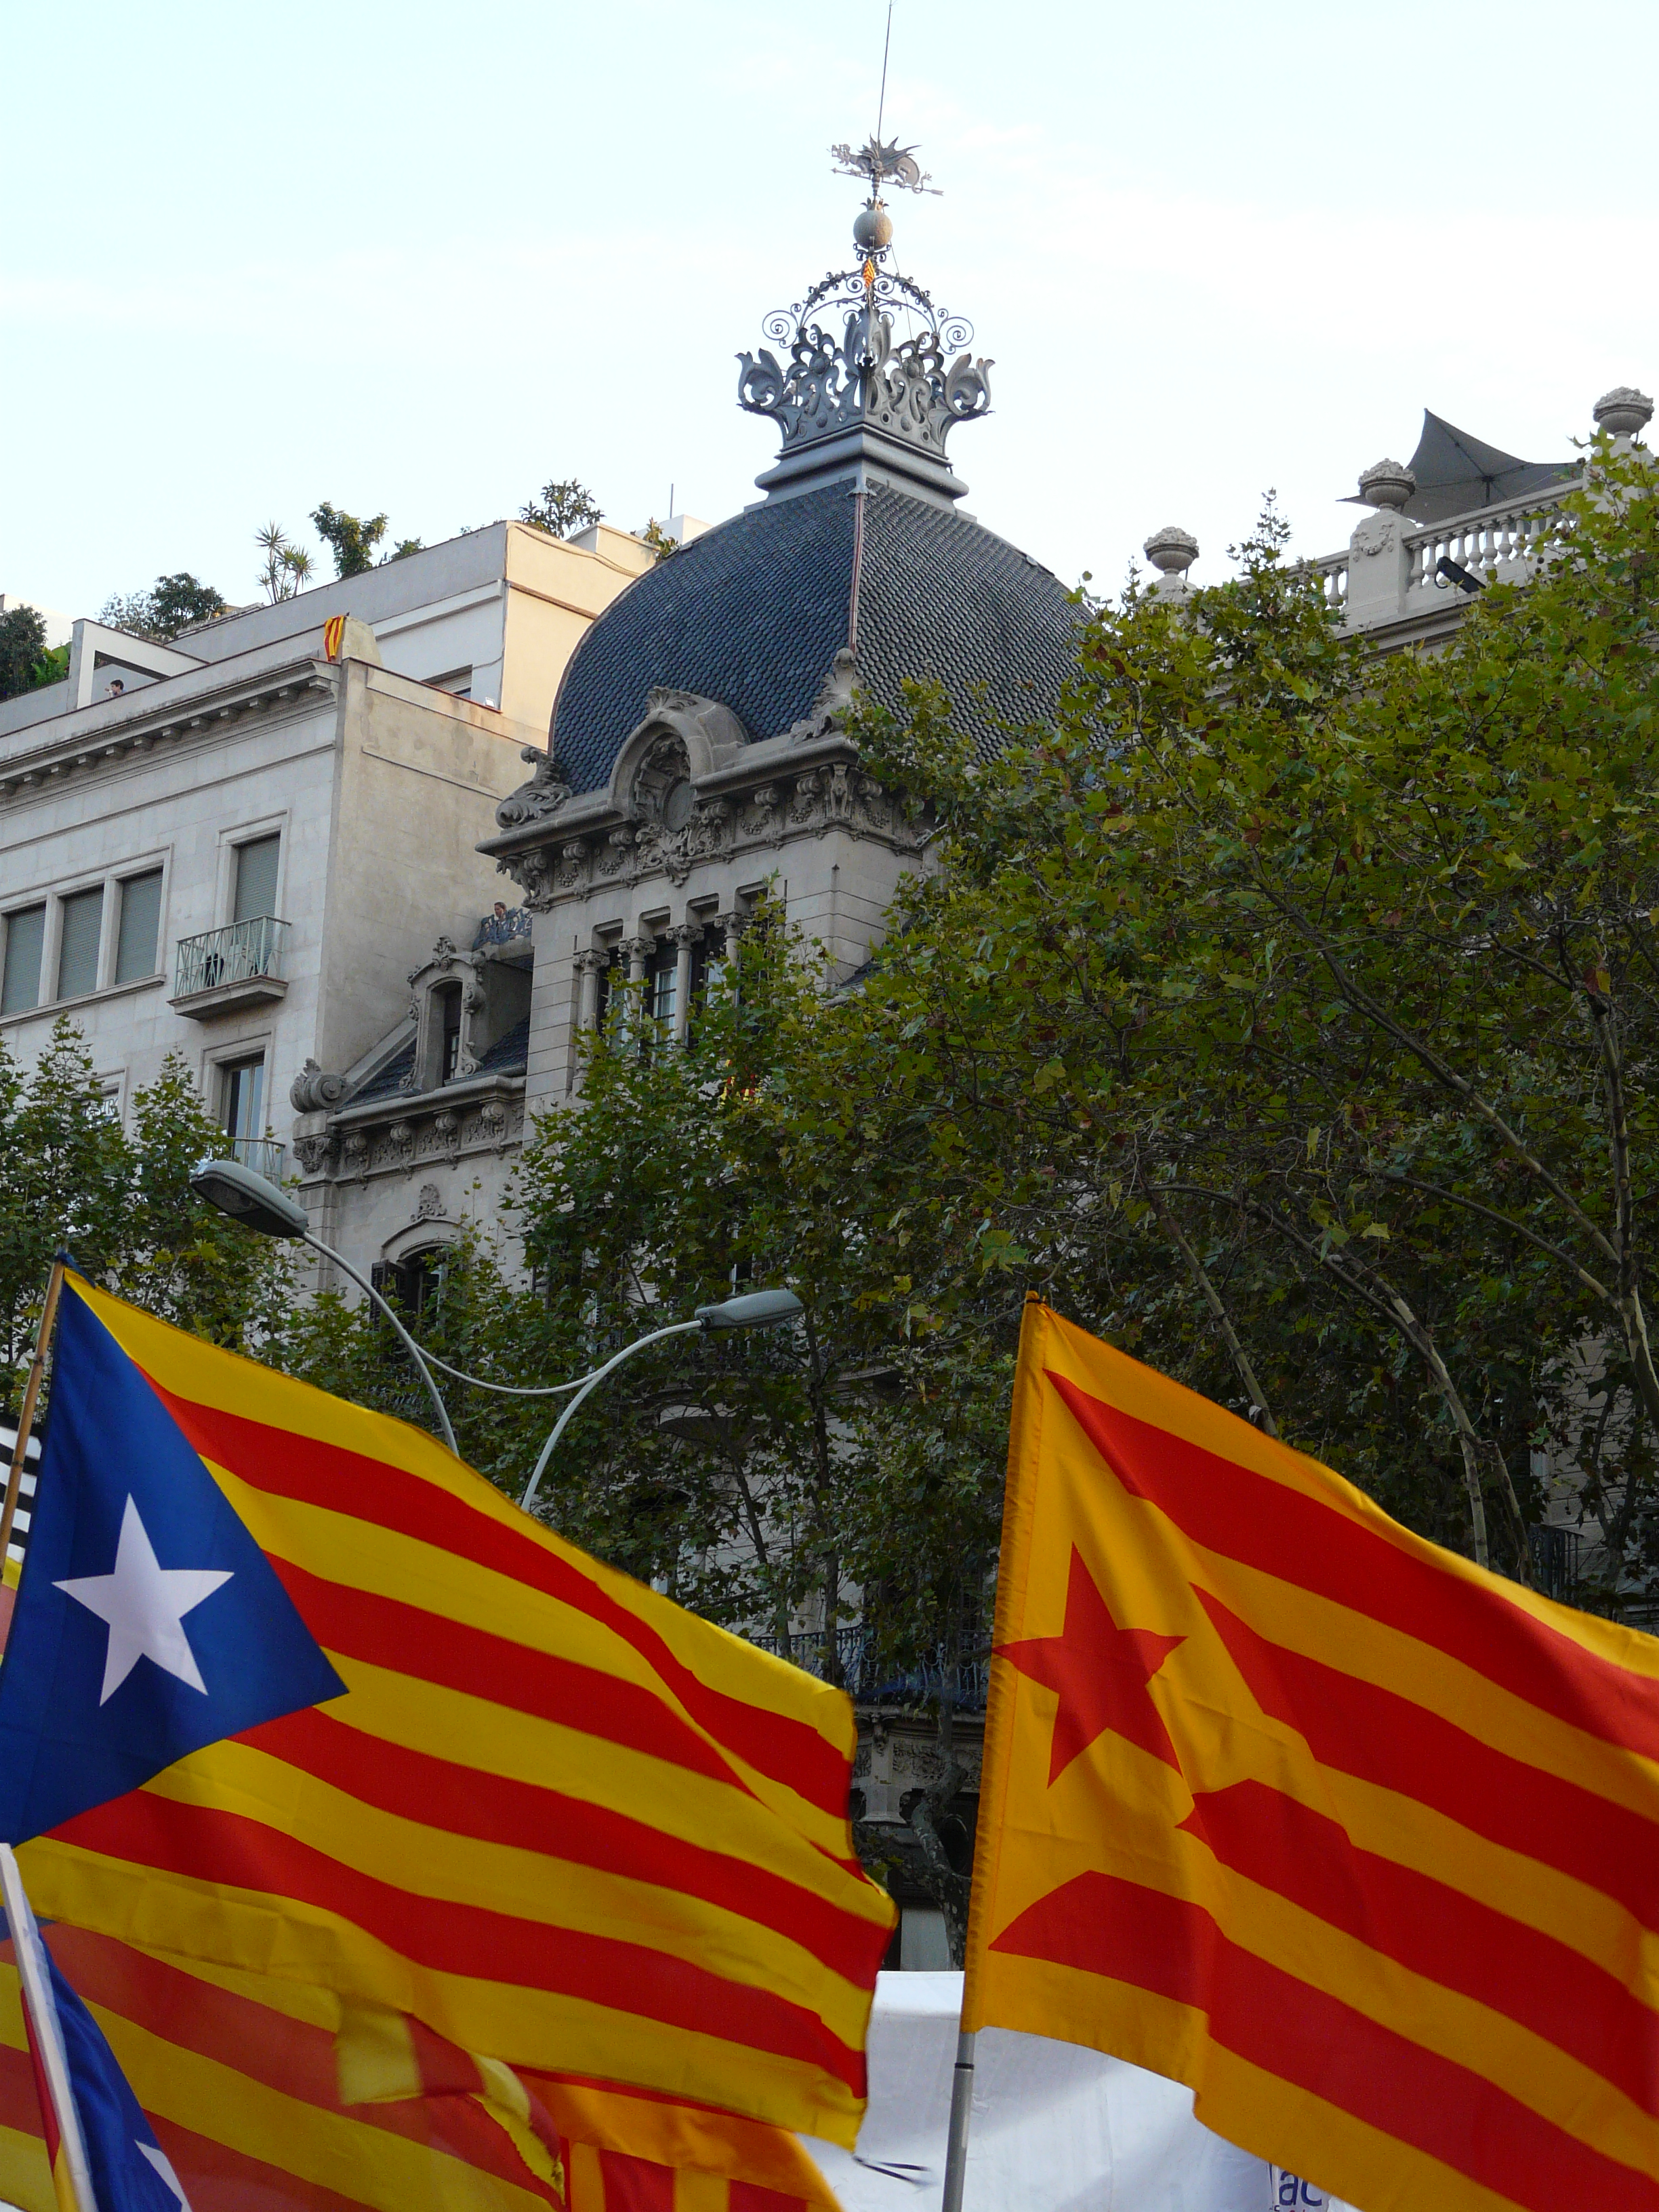 Keith Martin presents Fun with Flags: the evolution of the Catalan Estelada